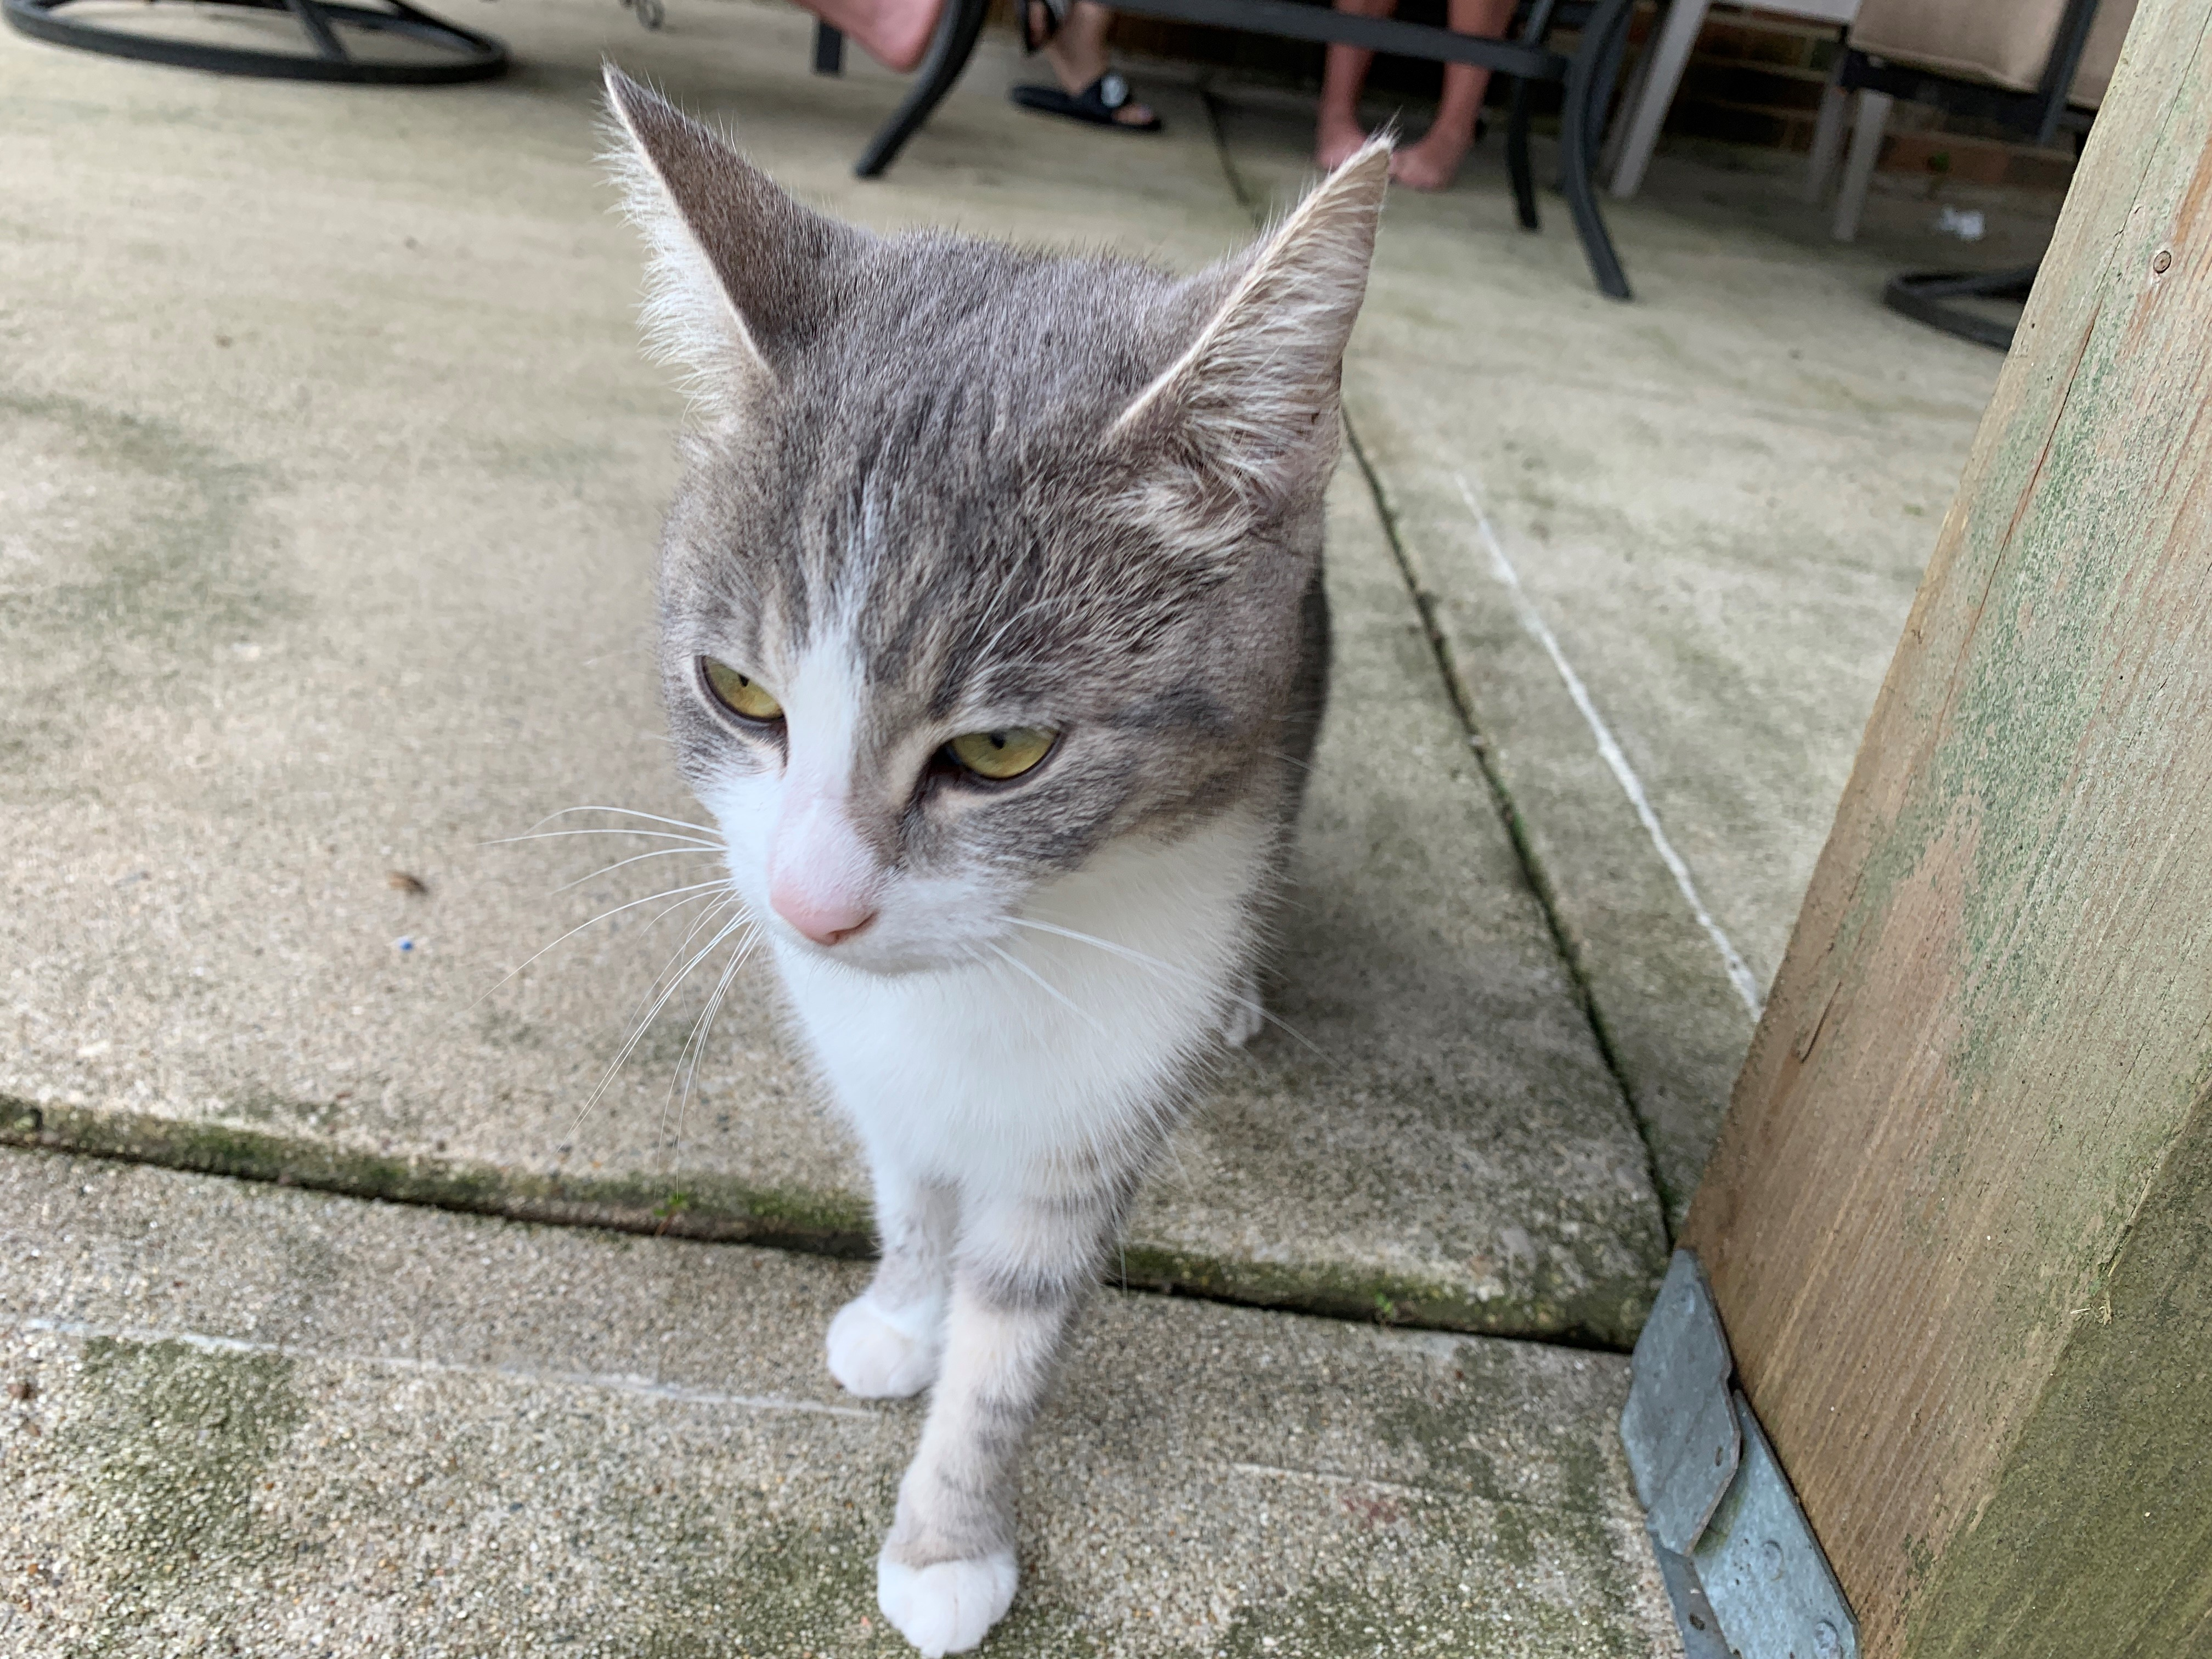 Mouse was found outside in a storm abandoned. She is much happier having a place to live and loves being with her people. (WDTN Photo)